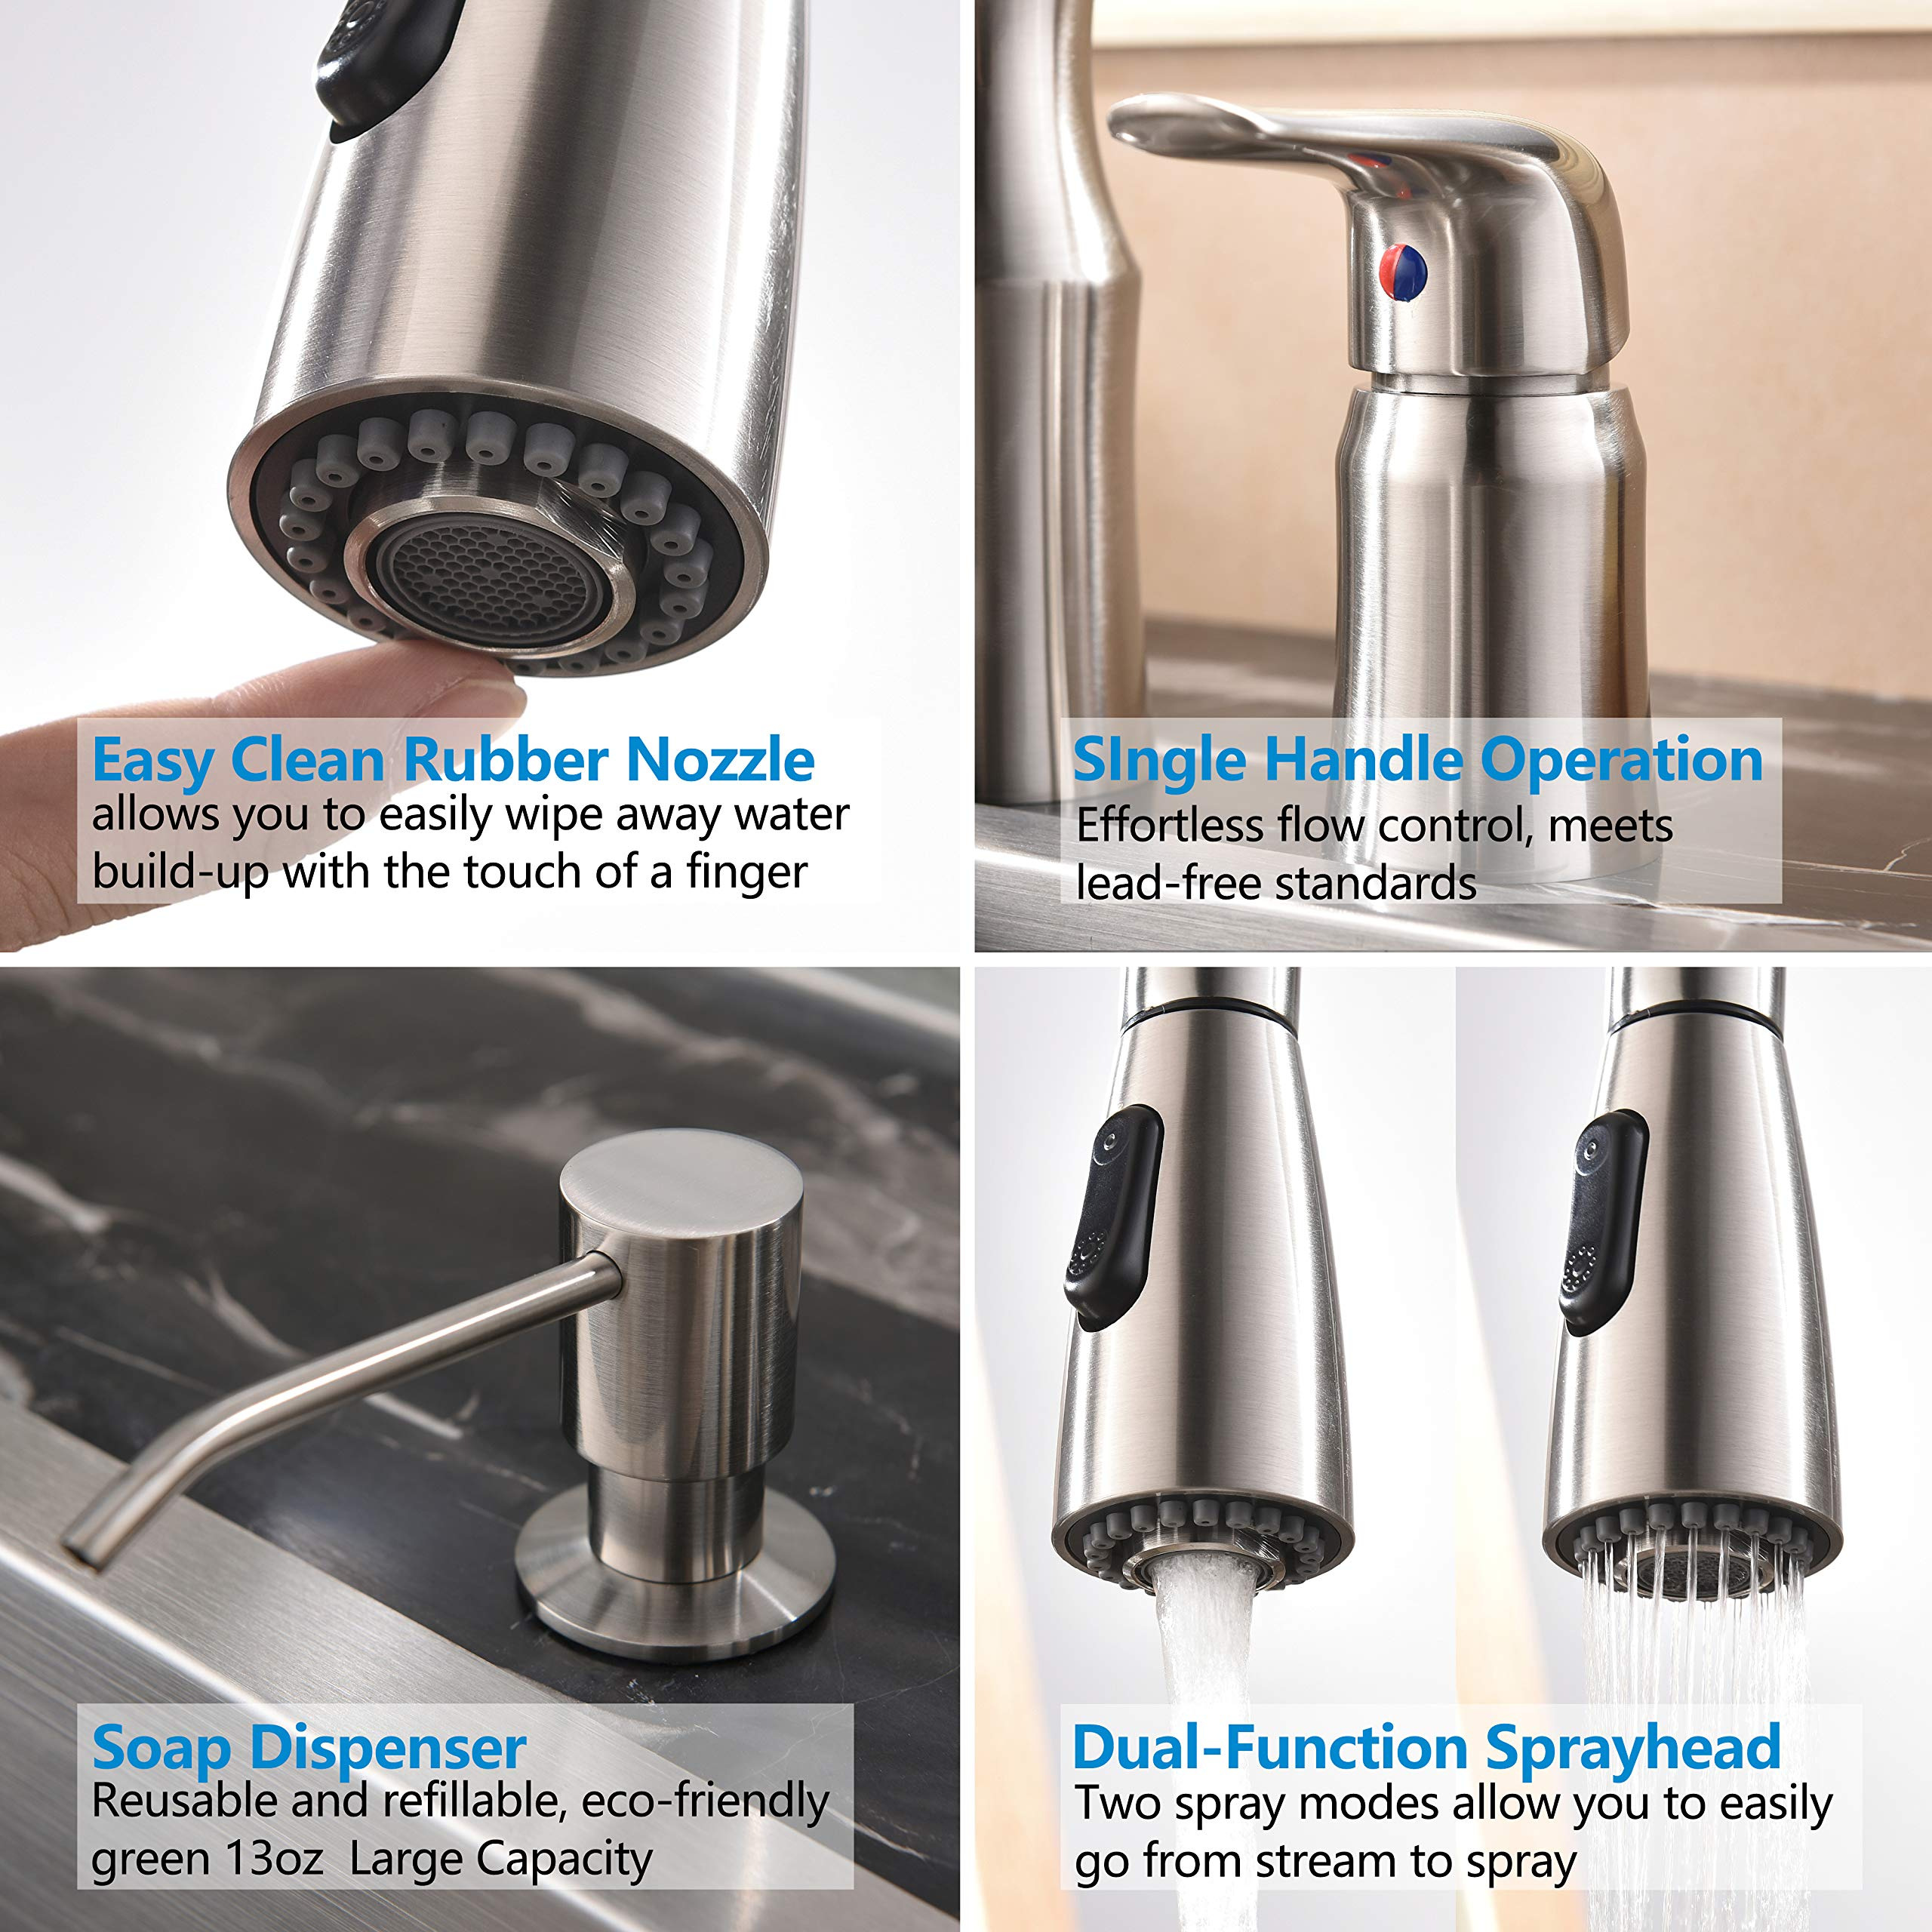 Hotis 3 Hole Kitchen Sink Faucet with Pull Down Sprayer Soap Dispenser Stainless Steel Single Handle Kitchen Faucet, Brushed Nickel by HOTIS HOME (Image #3)